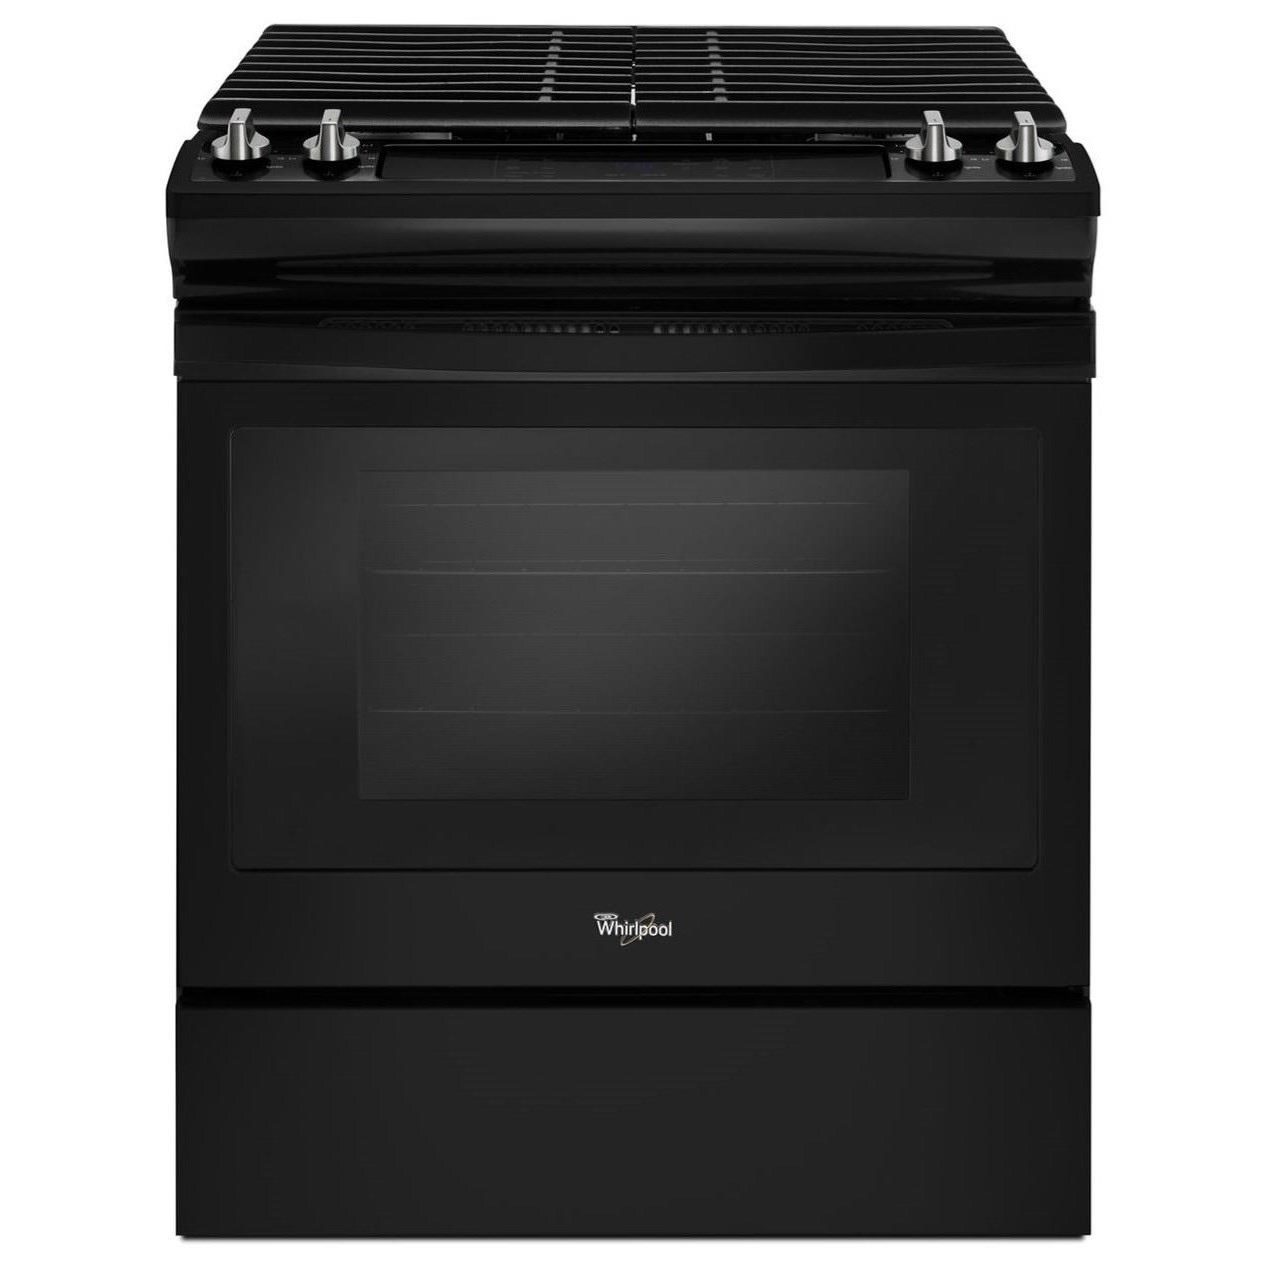 Gas Ranges 5.0 cu. ft. Front Control Slide-In Gas Range by Whirlpool at Furniture and ApplianceMart